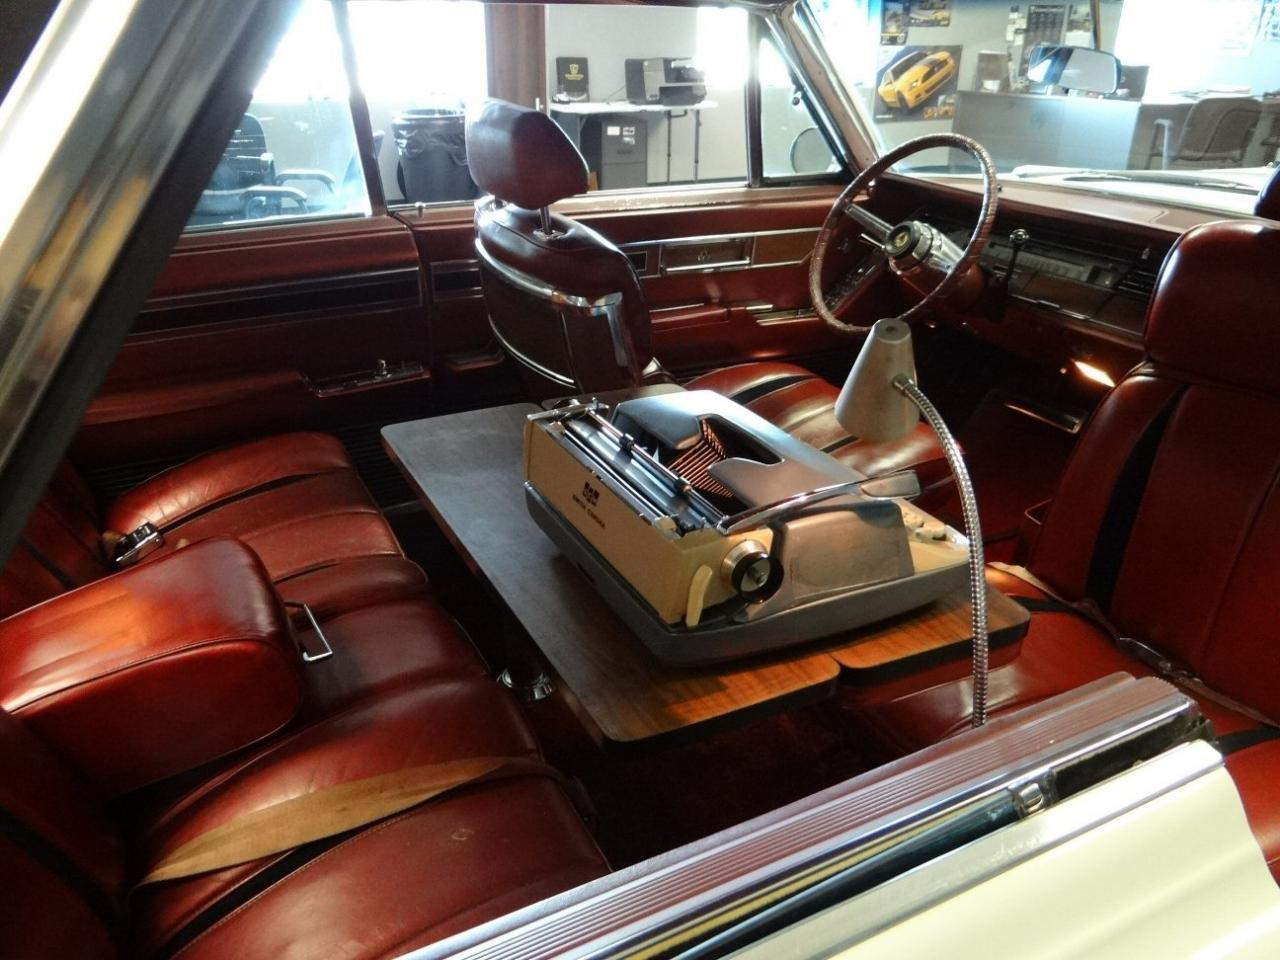 1967 Chrysler Imperial Crown Coupe 6474 Miles White Coupe